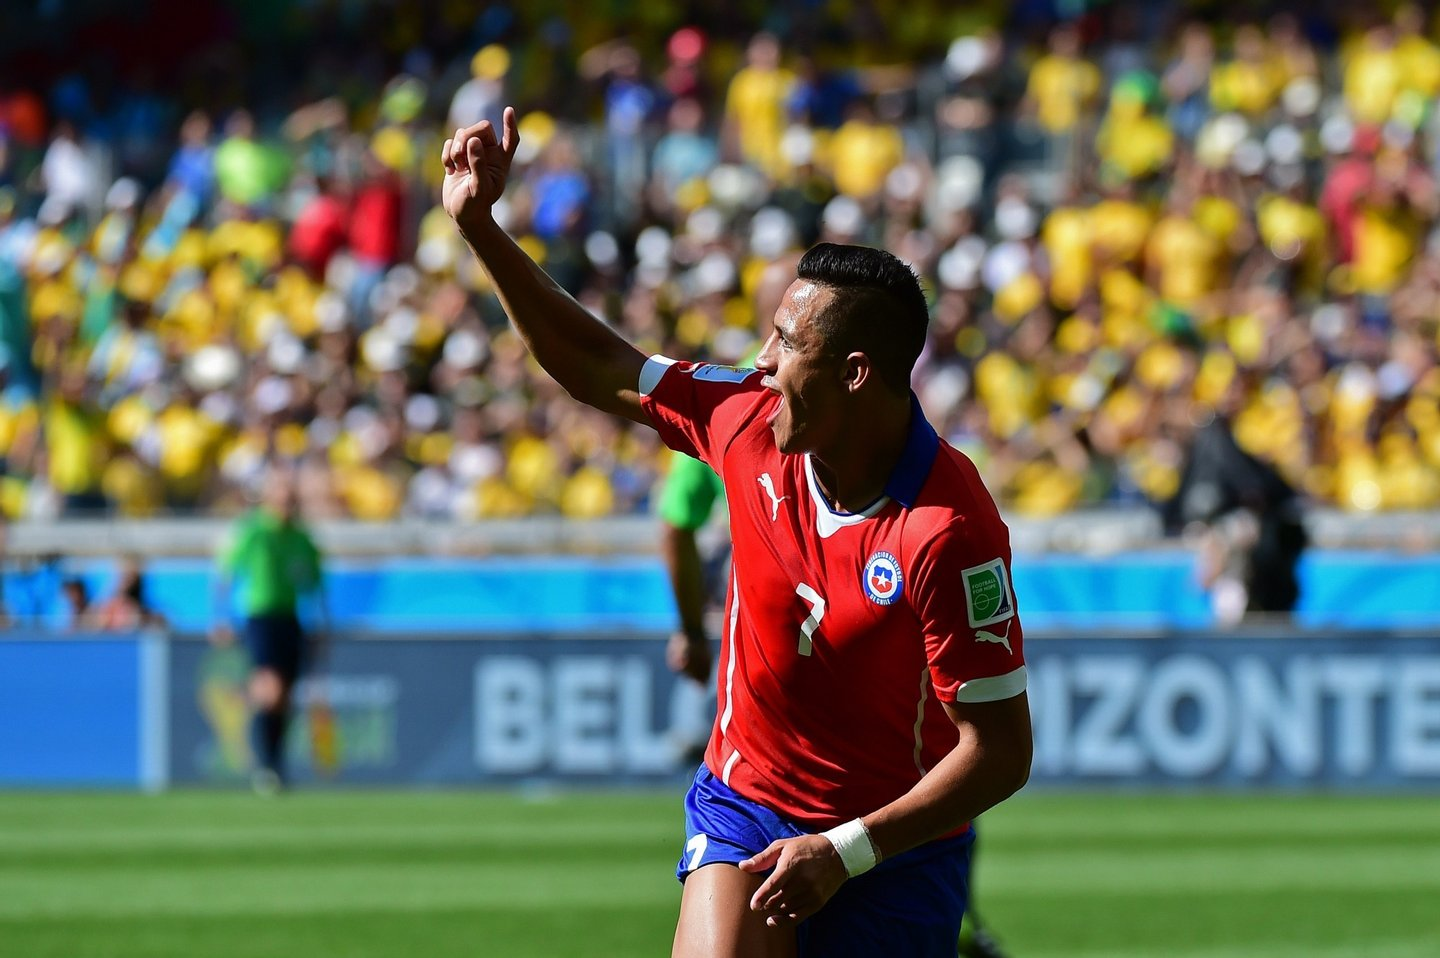 Chile's forward Alexis Sanchez celebrates after scoring a goal during the Round of 16 football match between Brazil and Chile at The Mineirao Stadium in Belo Horizonte during the 2014 FIFA World Cup on June 28, 2014. AFP PHOTO / MARTIN BERNETTI